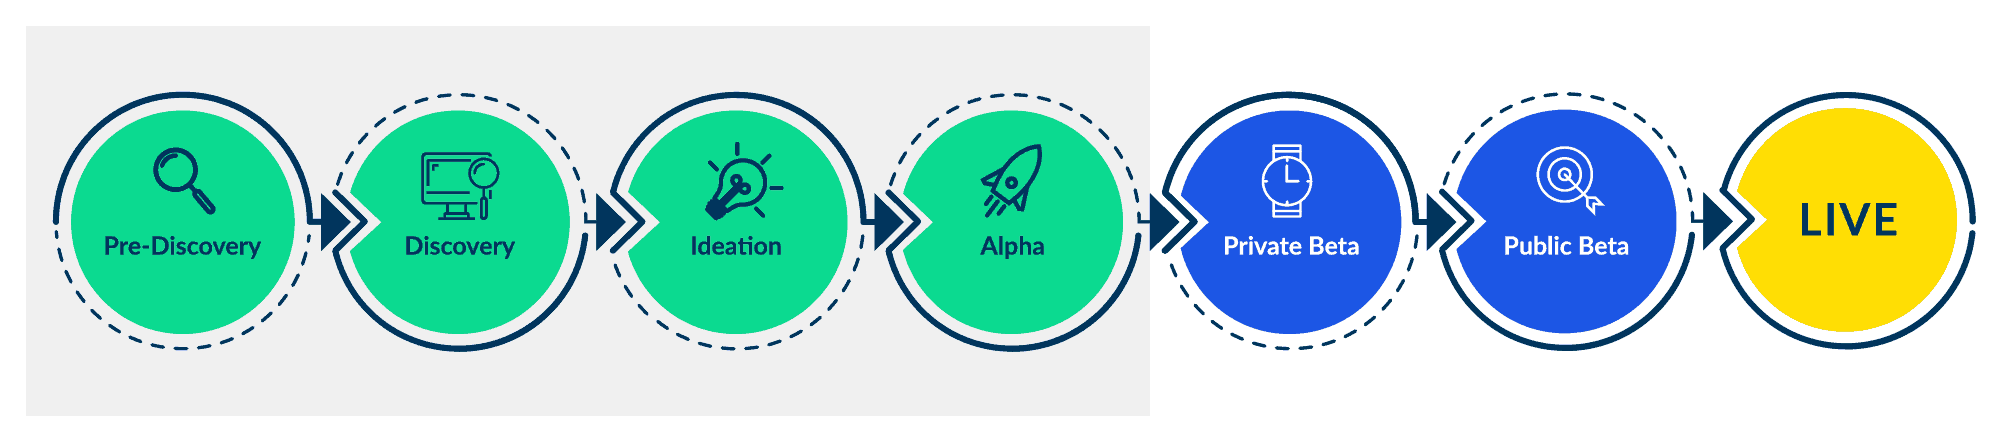 The steps involved in an agile project: pre-discovery, discovery, ideation, alpha, private beta, public beta, and Live.